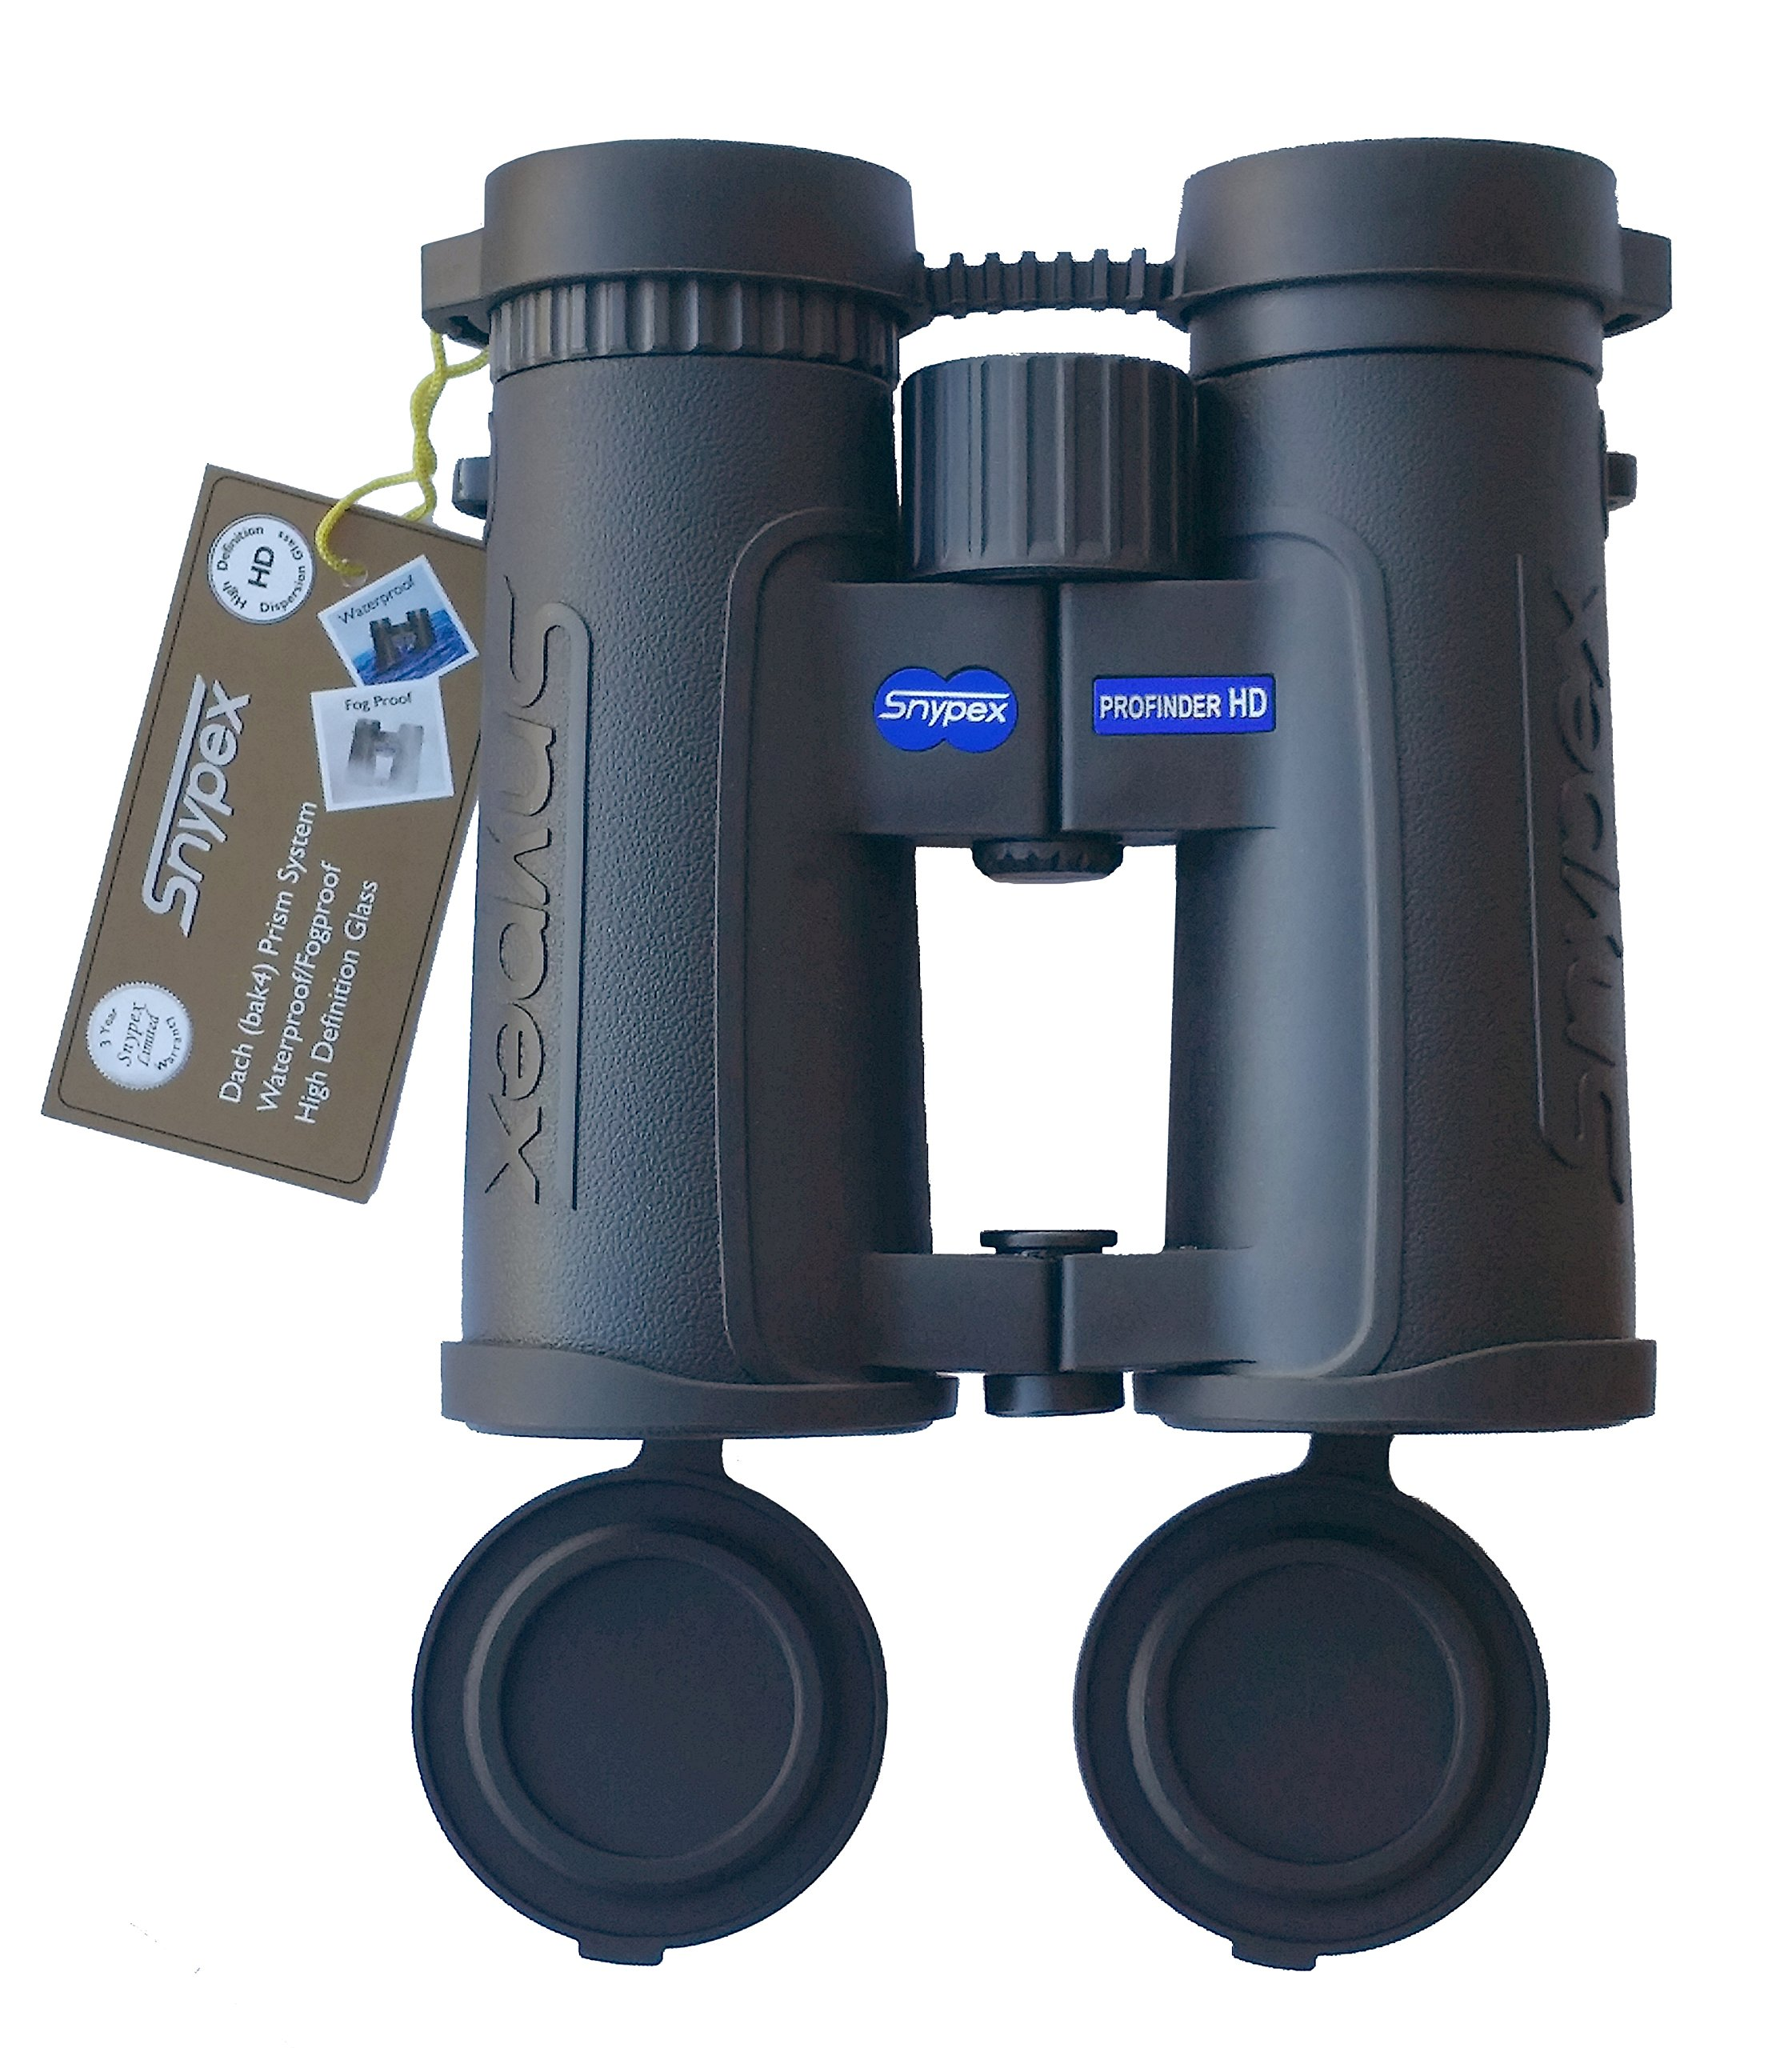 snypex Profinder HD 8 x 32 Sport Optic Binocular for Hiking, Biking, Camping, Travel, Safari by snypex